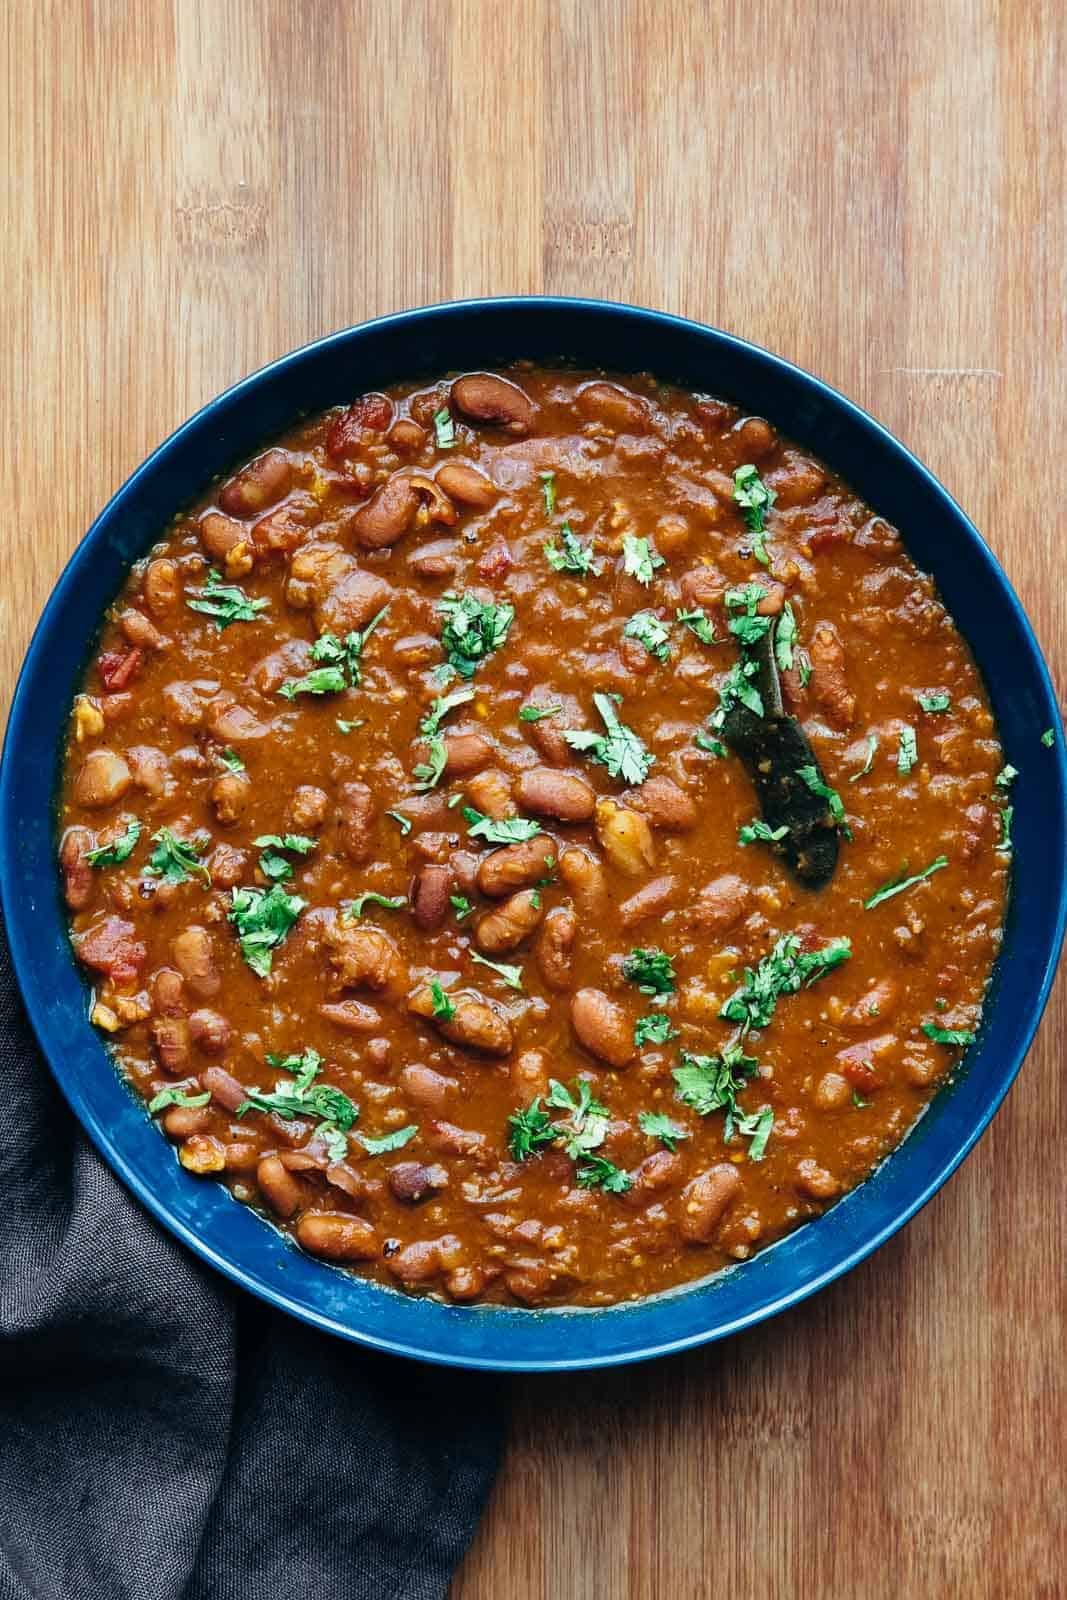 Rajma Masala served in a blue bowl with chopped coriander sprinkled over